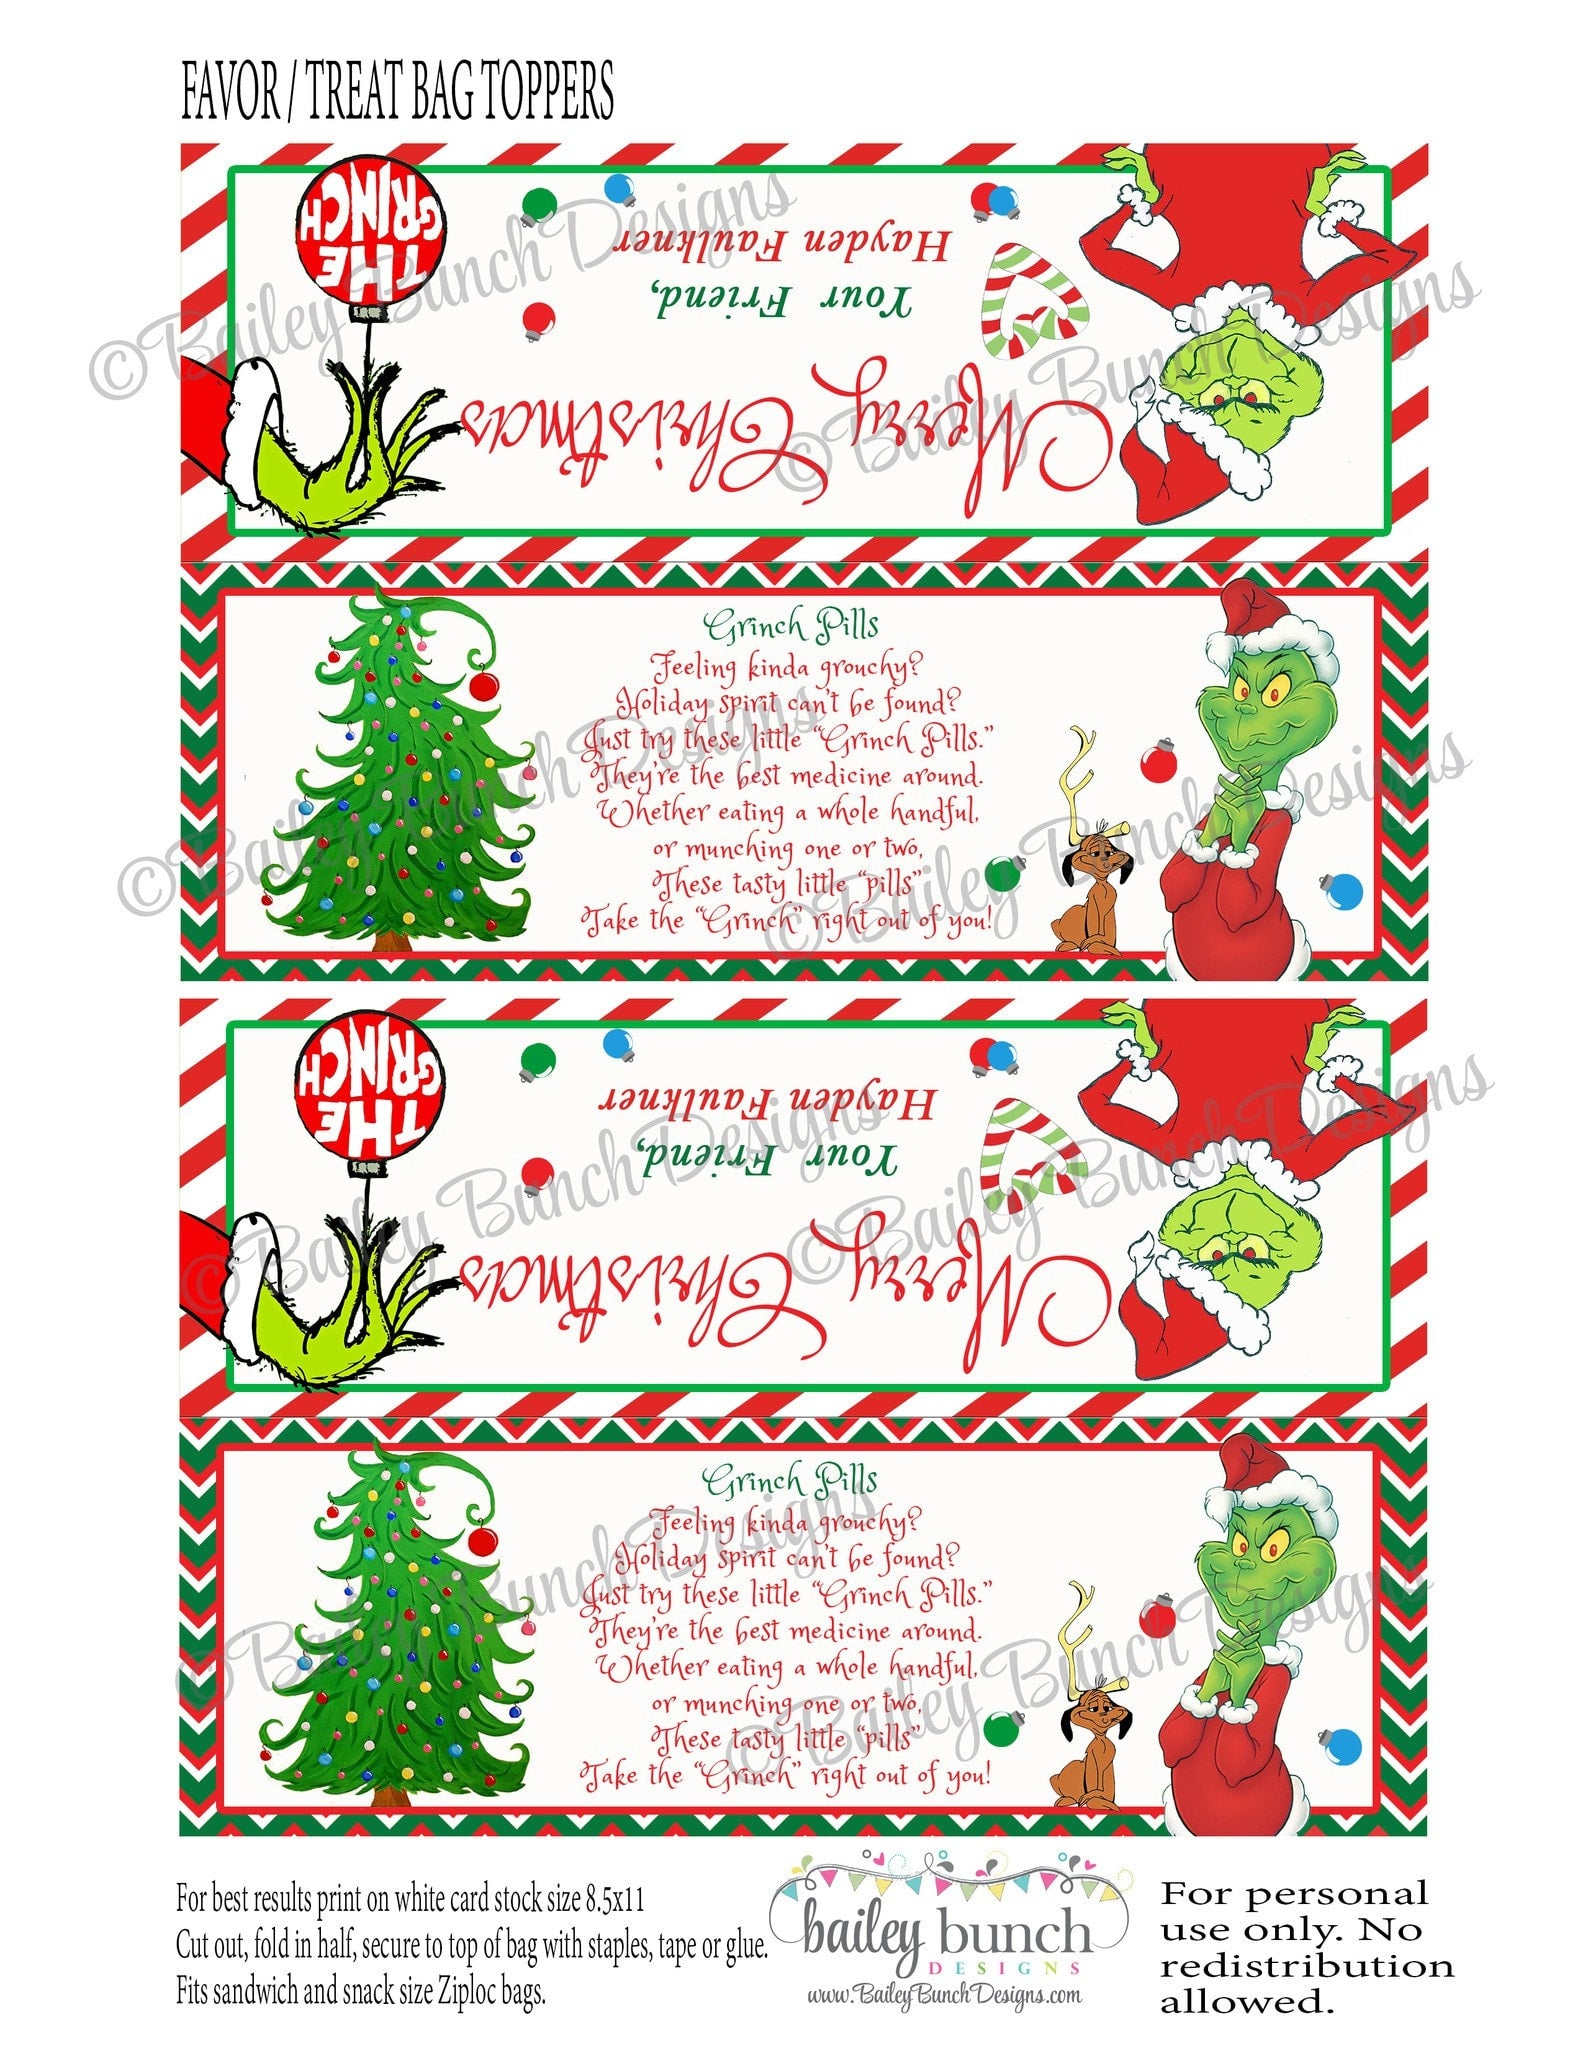 image about Christmas Bag Toppers Free Printable identified as Grinch Drugs Deal with Luggage, Xmas Toppers IDGRINCH0520